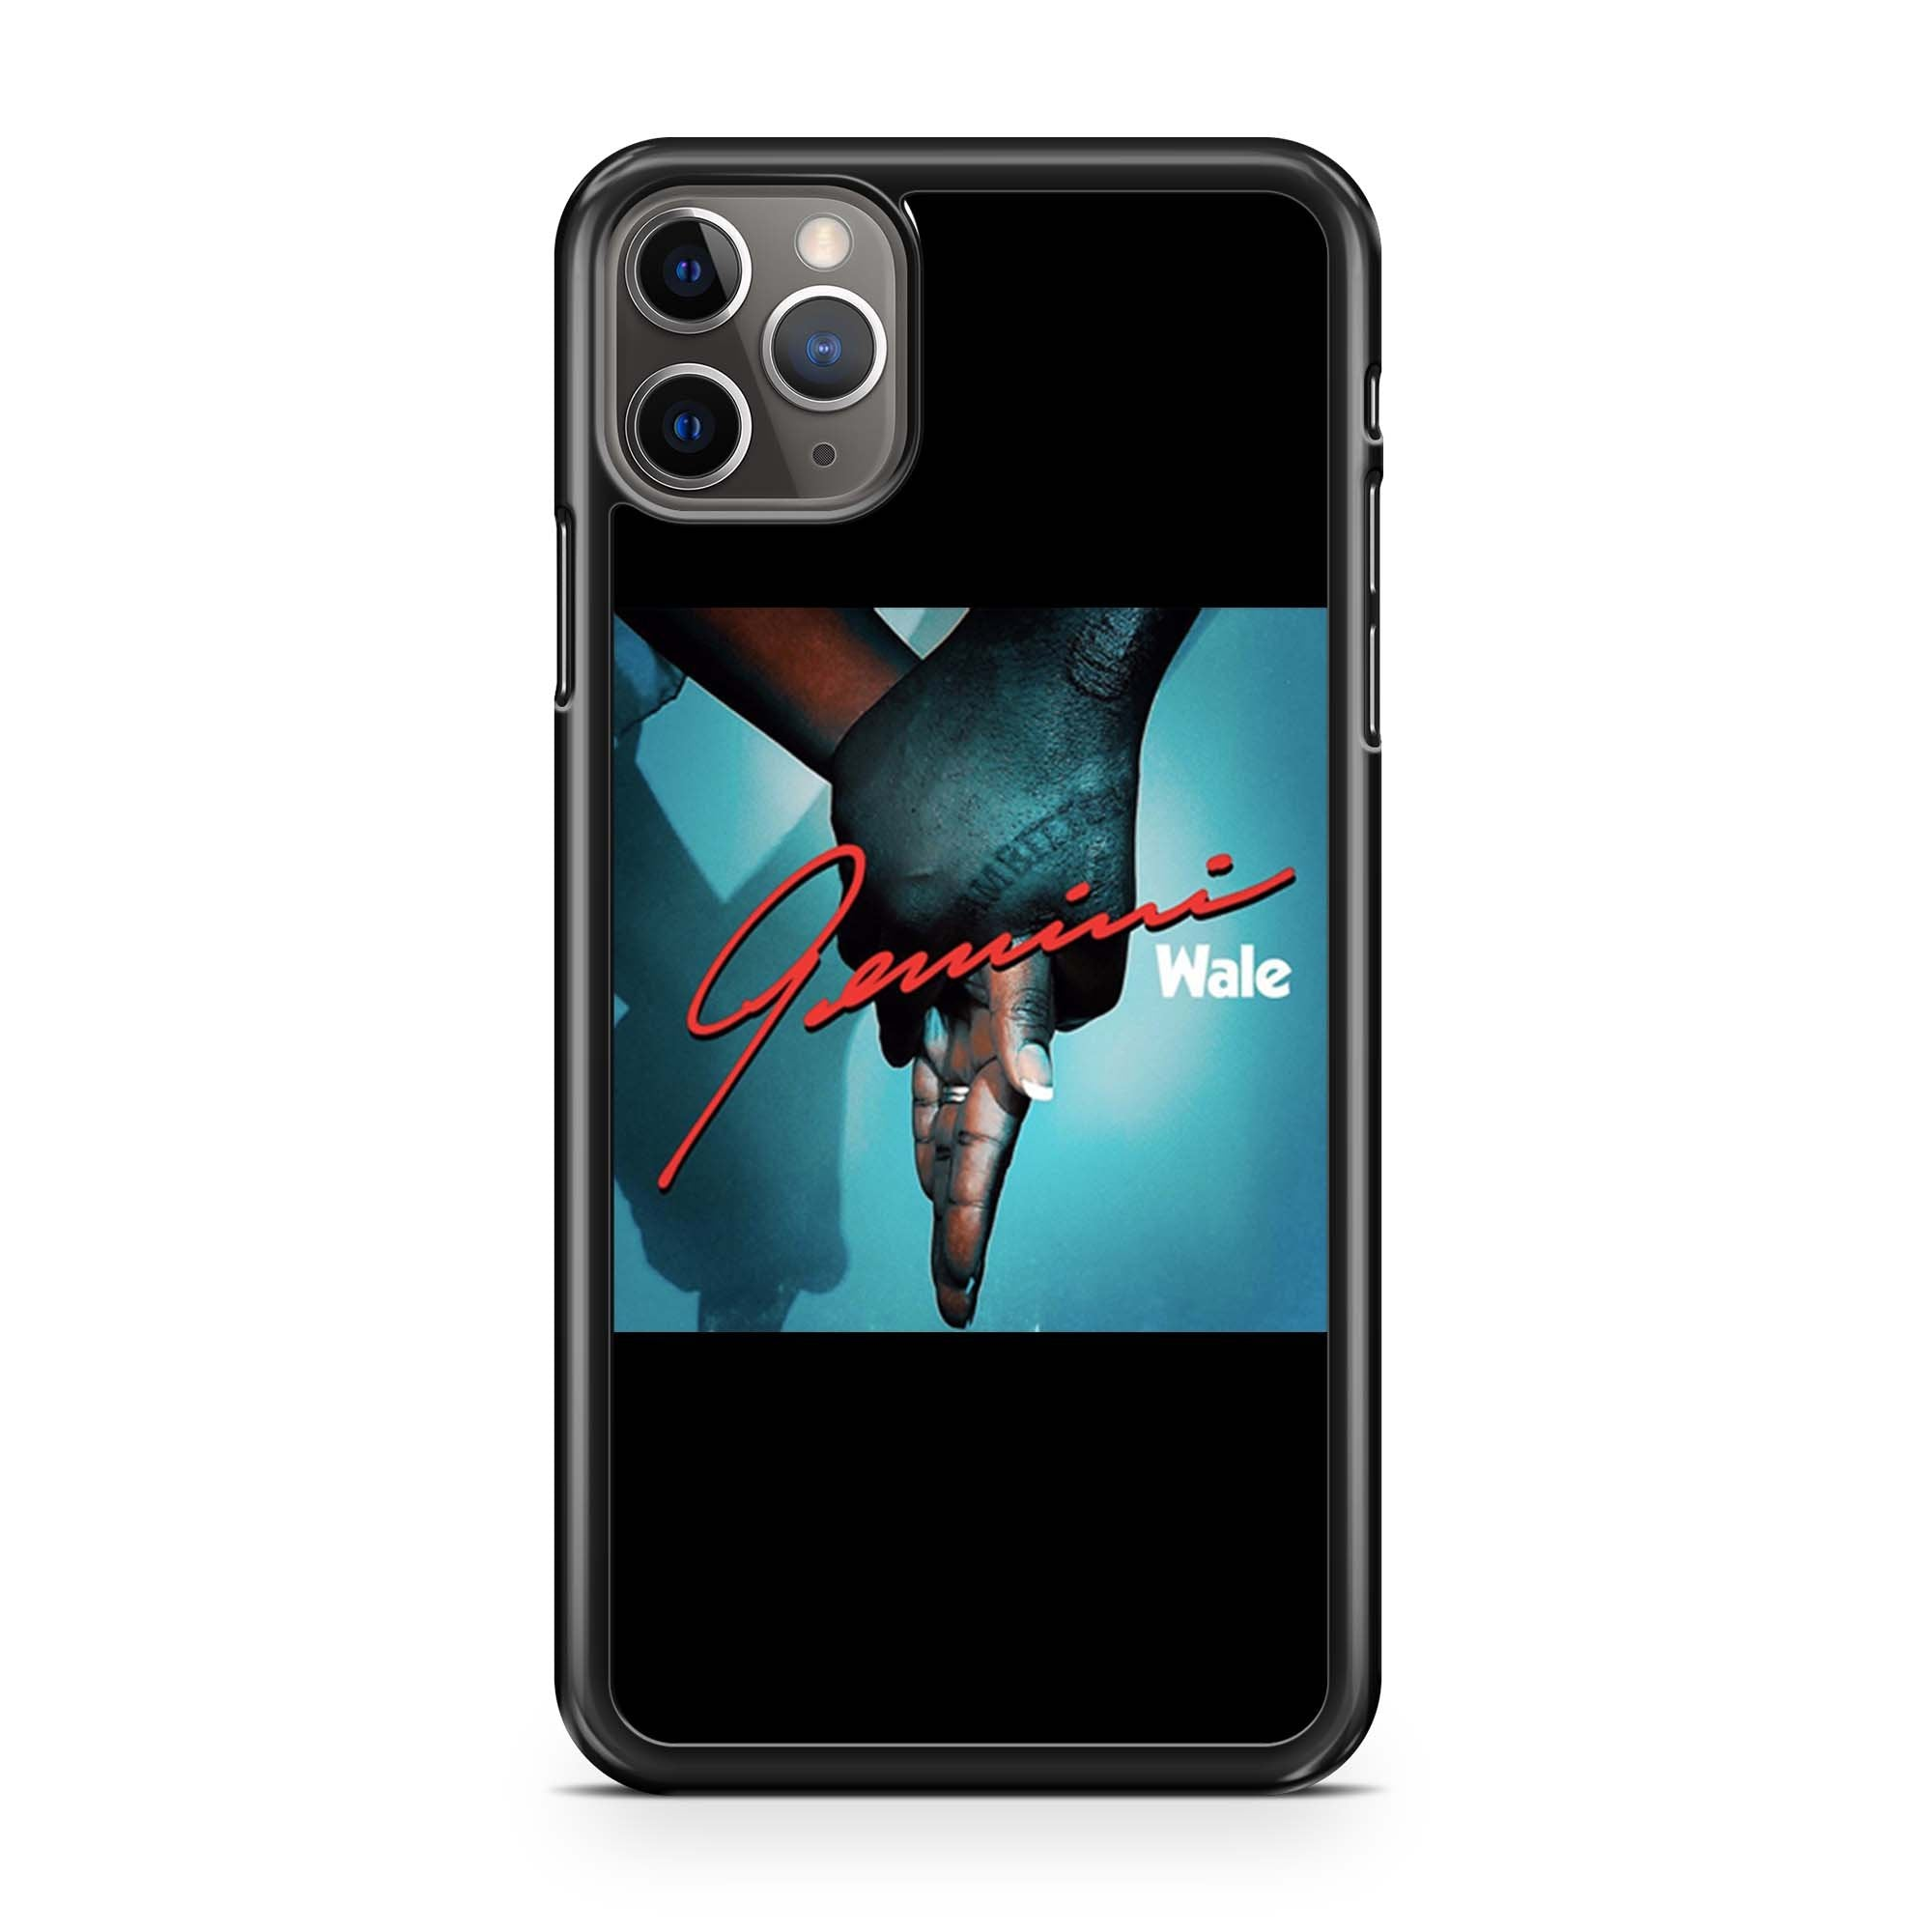 Wale Gemini iPhone 11 Pro Max Case